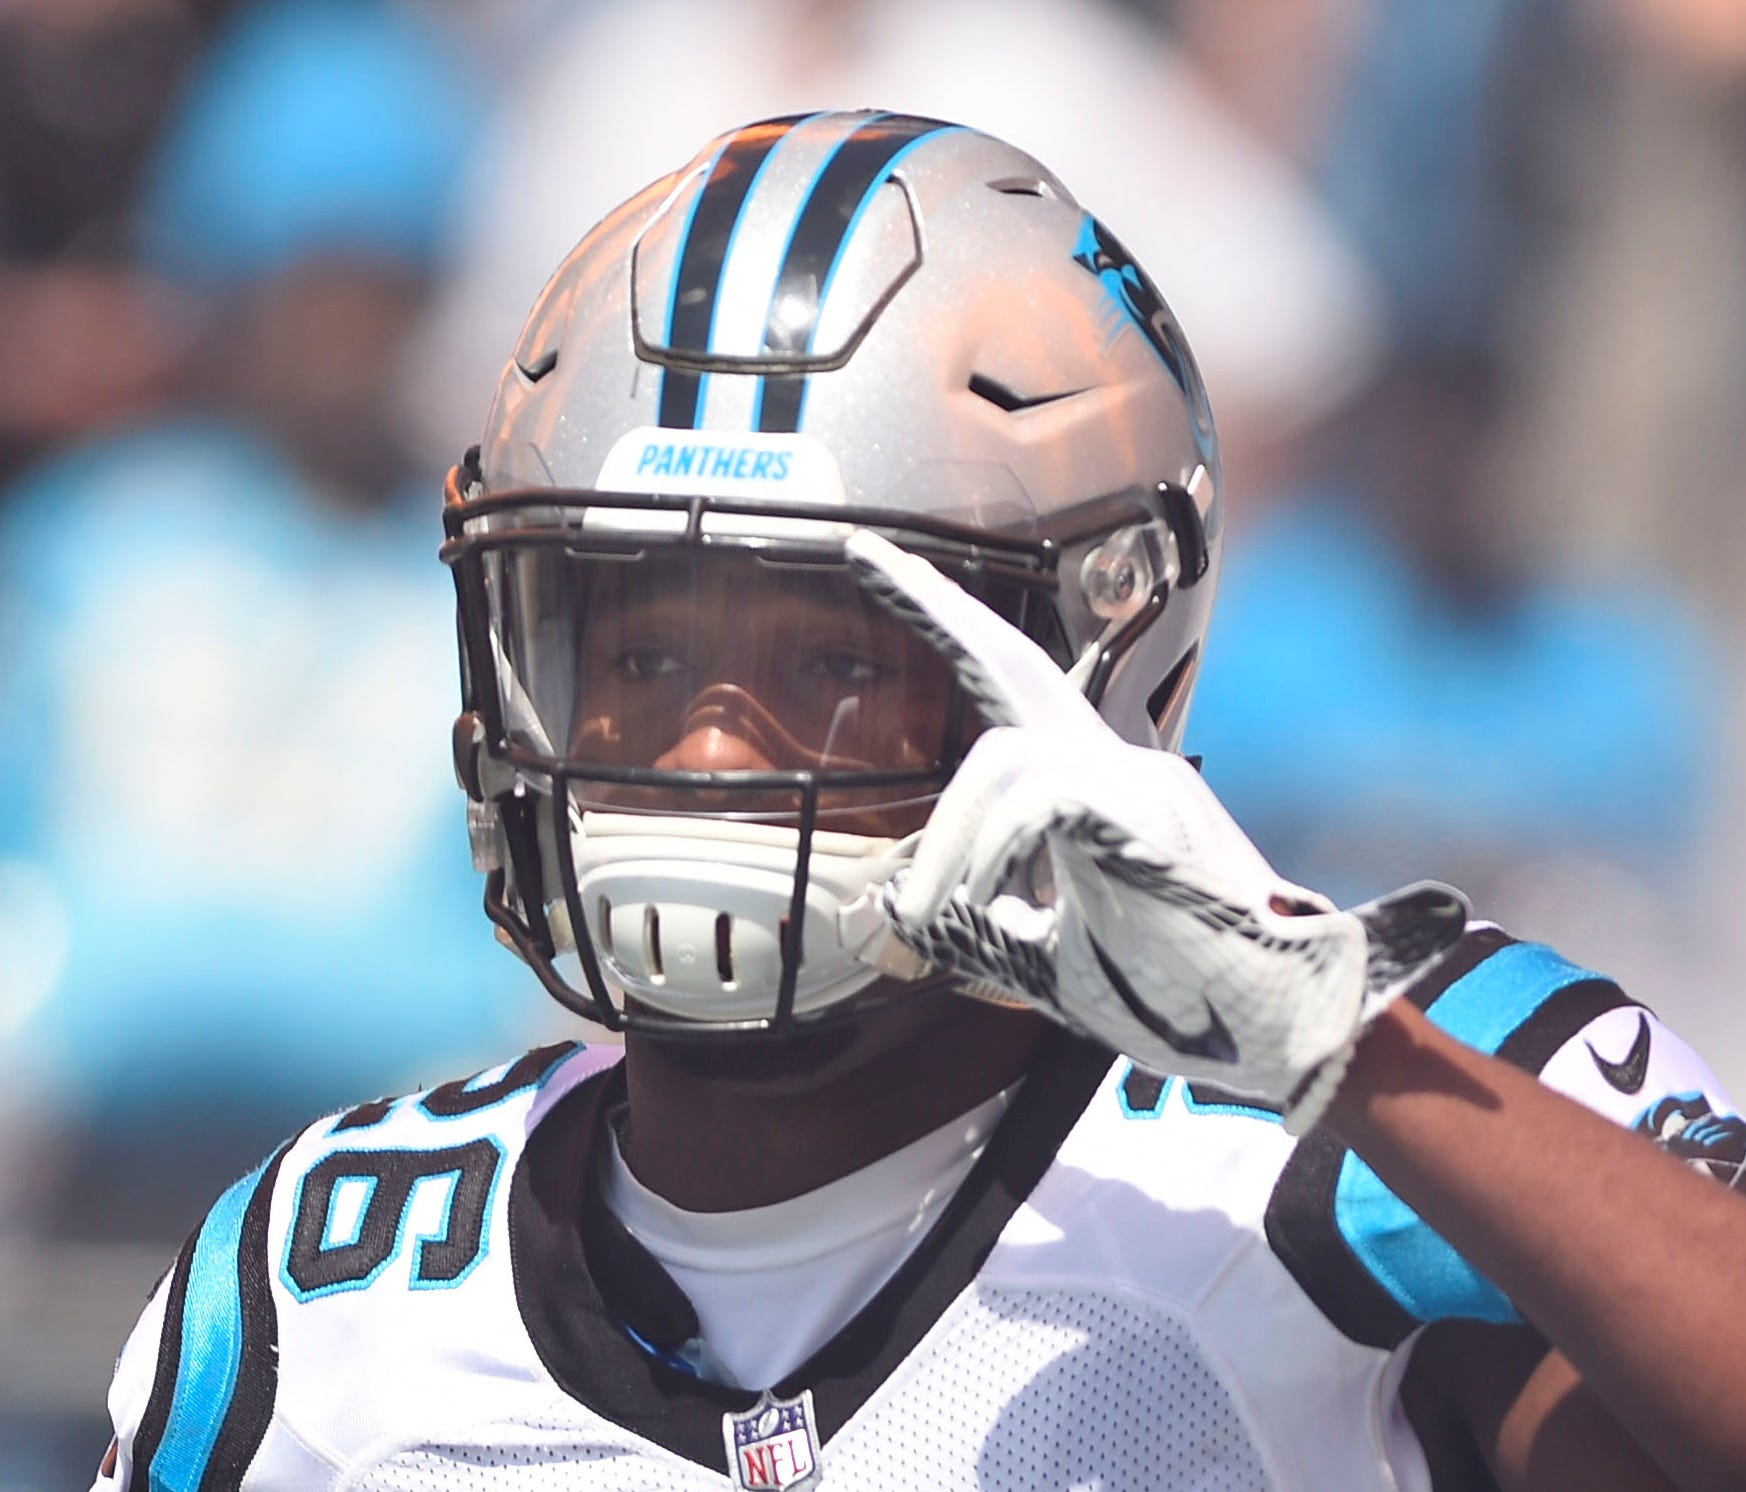 Daryl Worley recently was traded to the Eagles,.